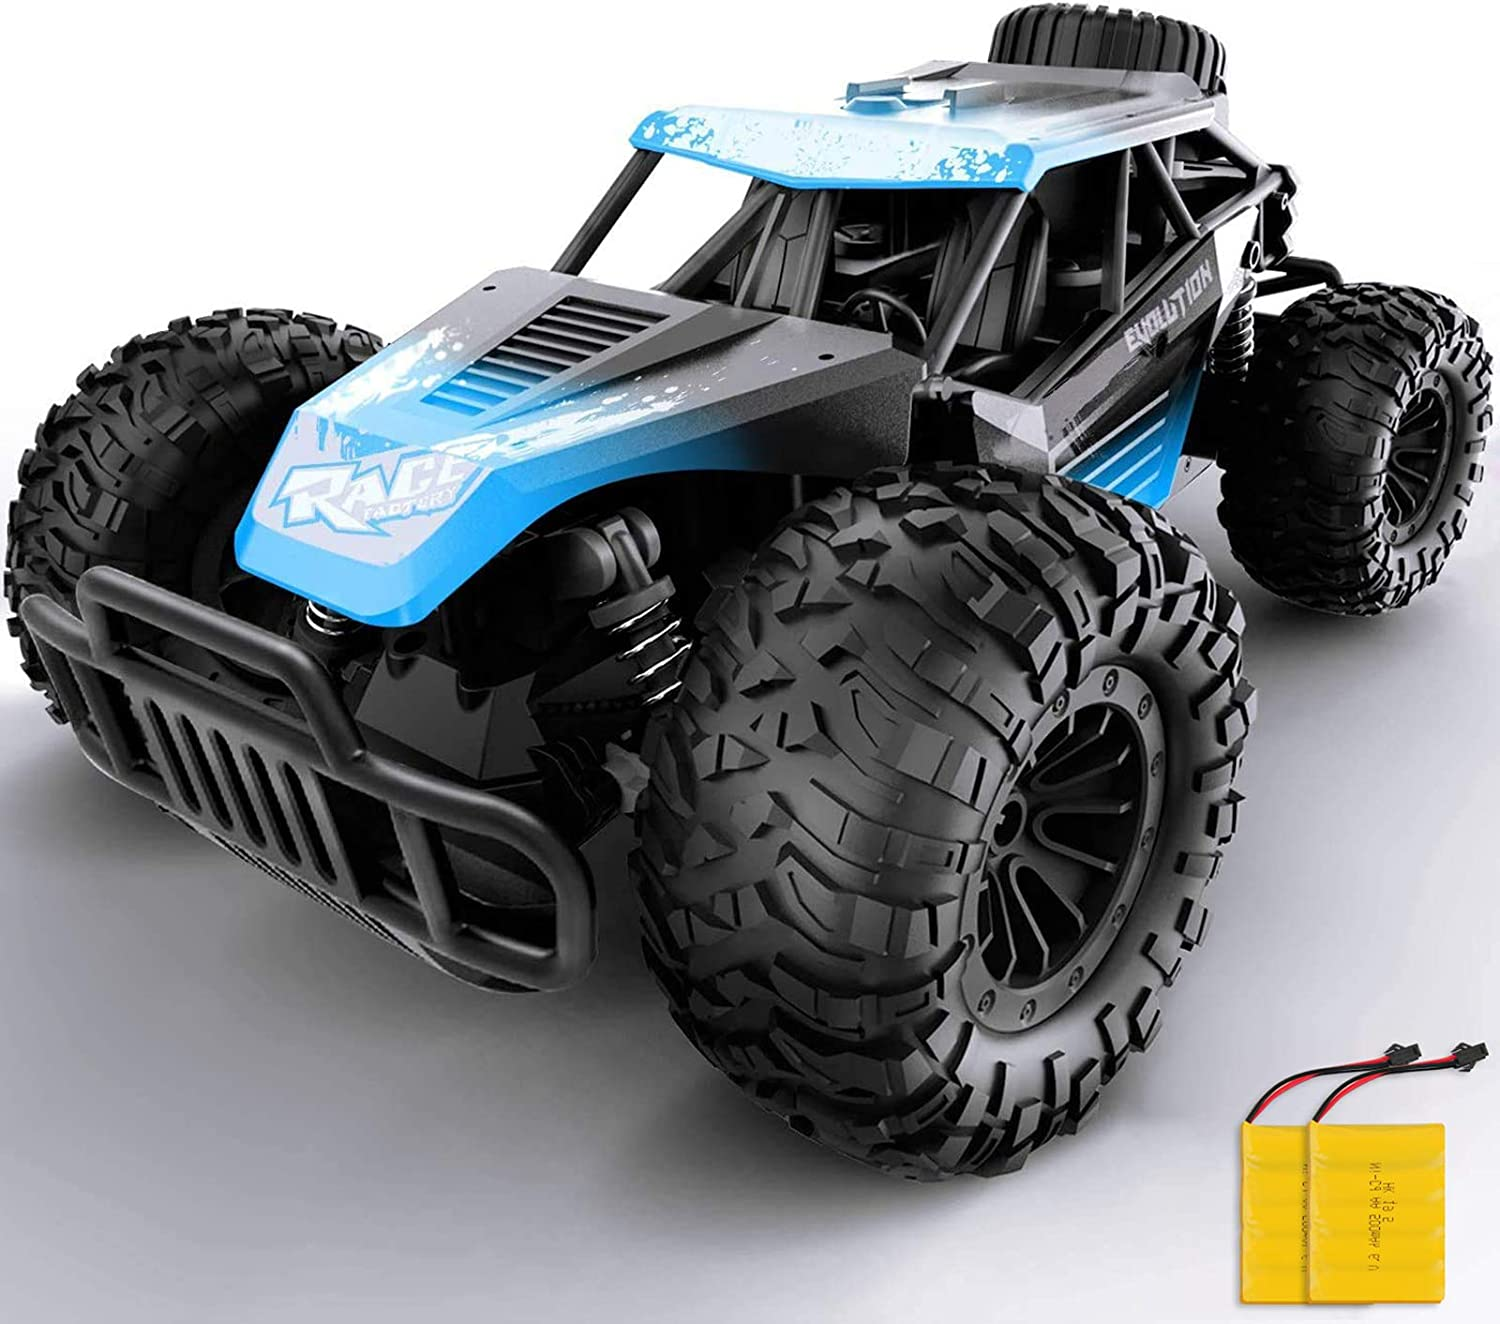 Gizmovine Wholesale Remote Control Car Seattle Mall 1:14 Speed Large Racing High Size